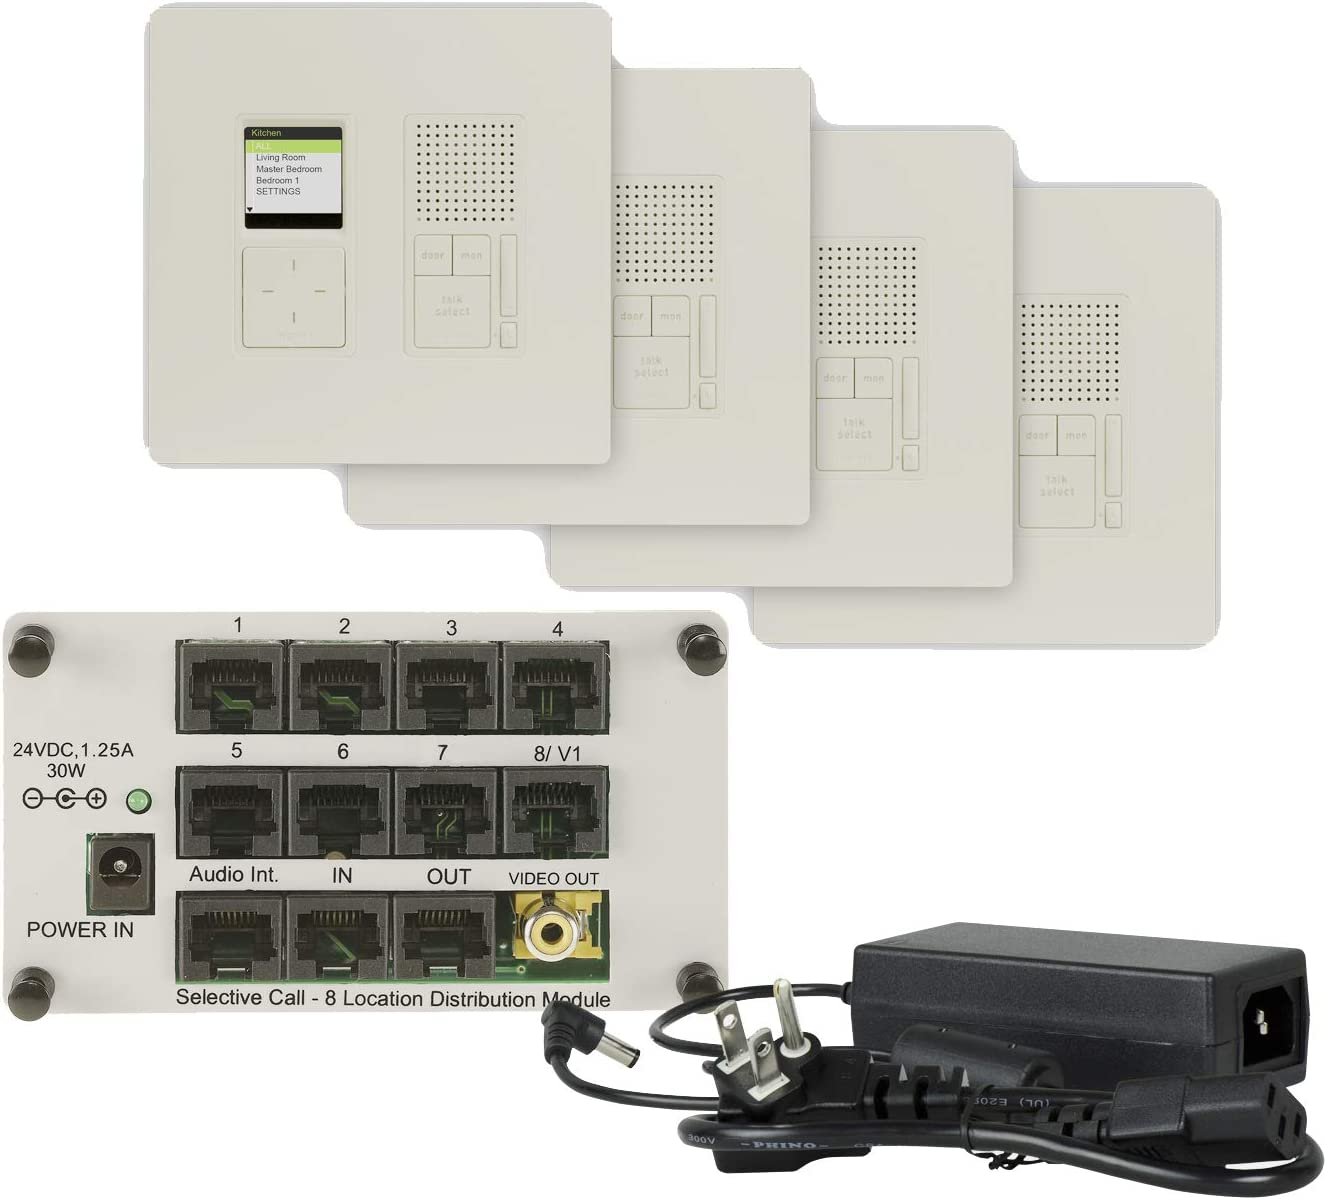 Legrand, Home Office & Theater, Intercom System for Home, Radiant, Light Almond, 4-Room Intercom Kit, IC7400LA